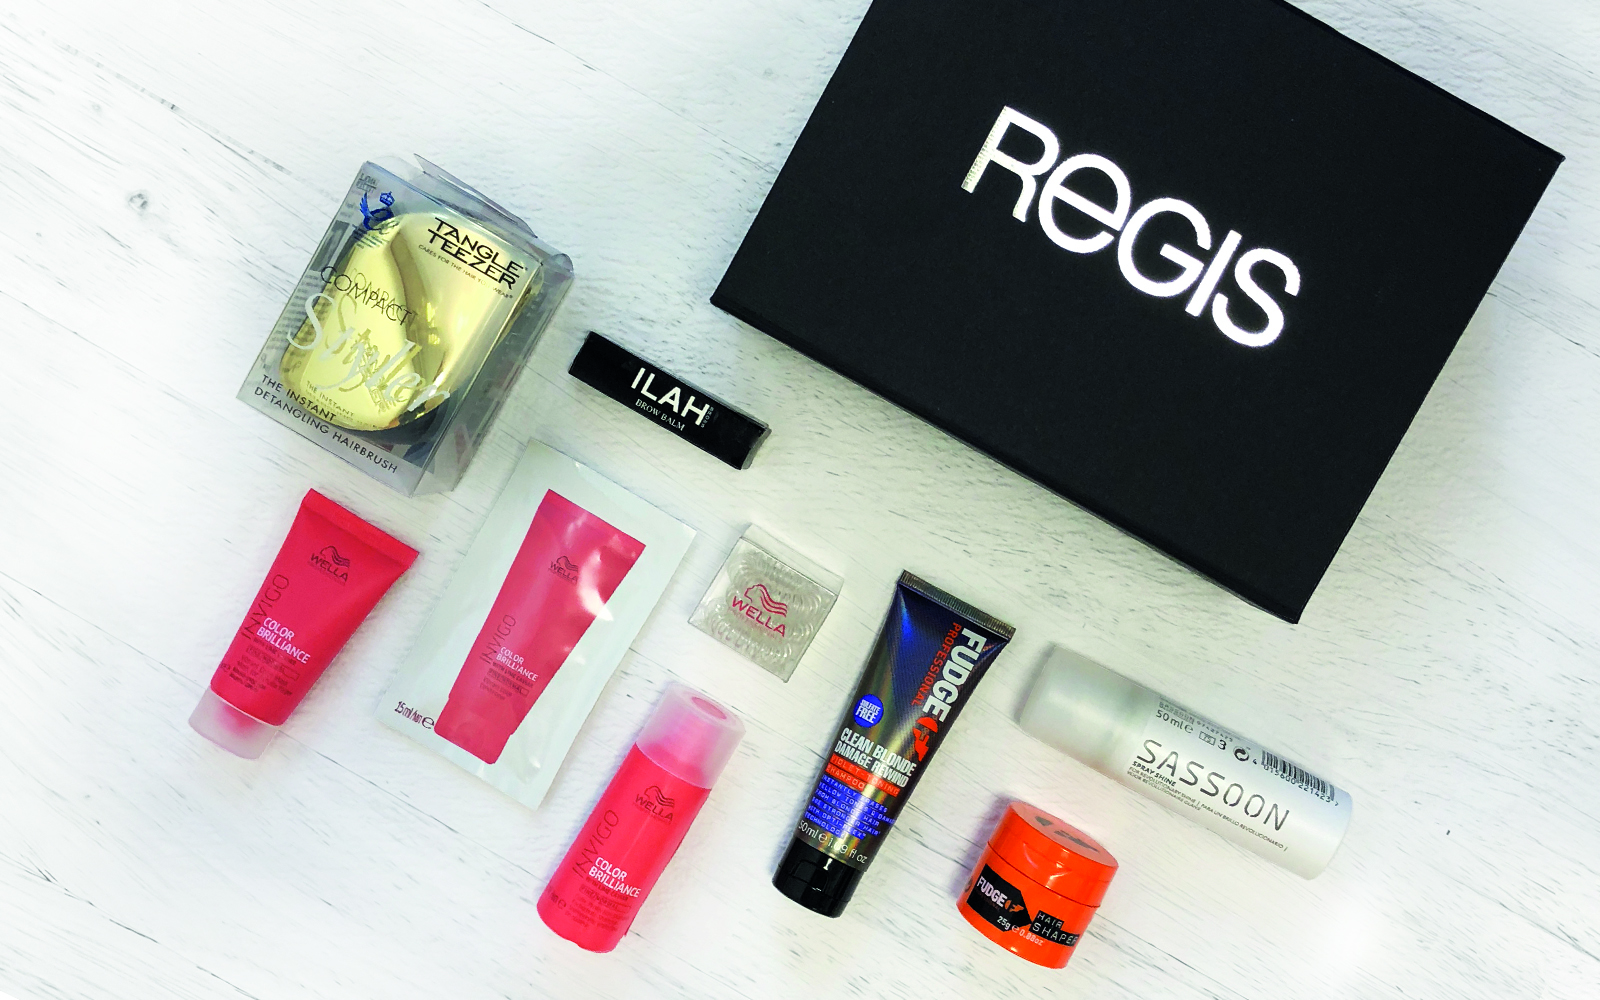 Regis Beauty Box Limited Edition